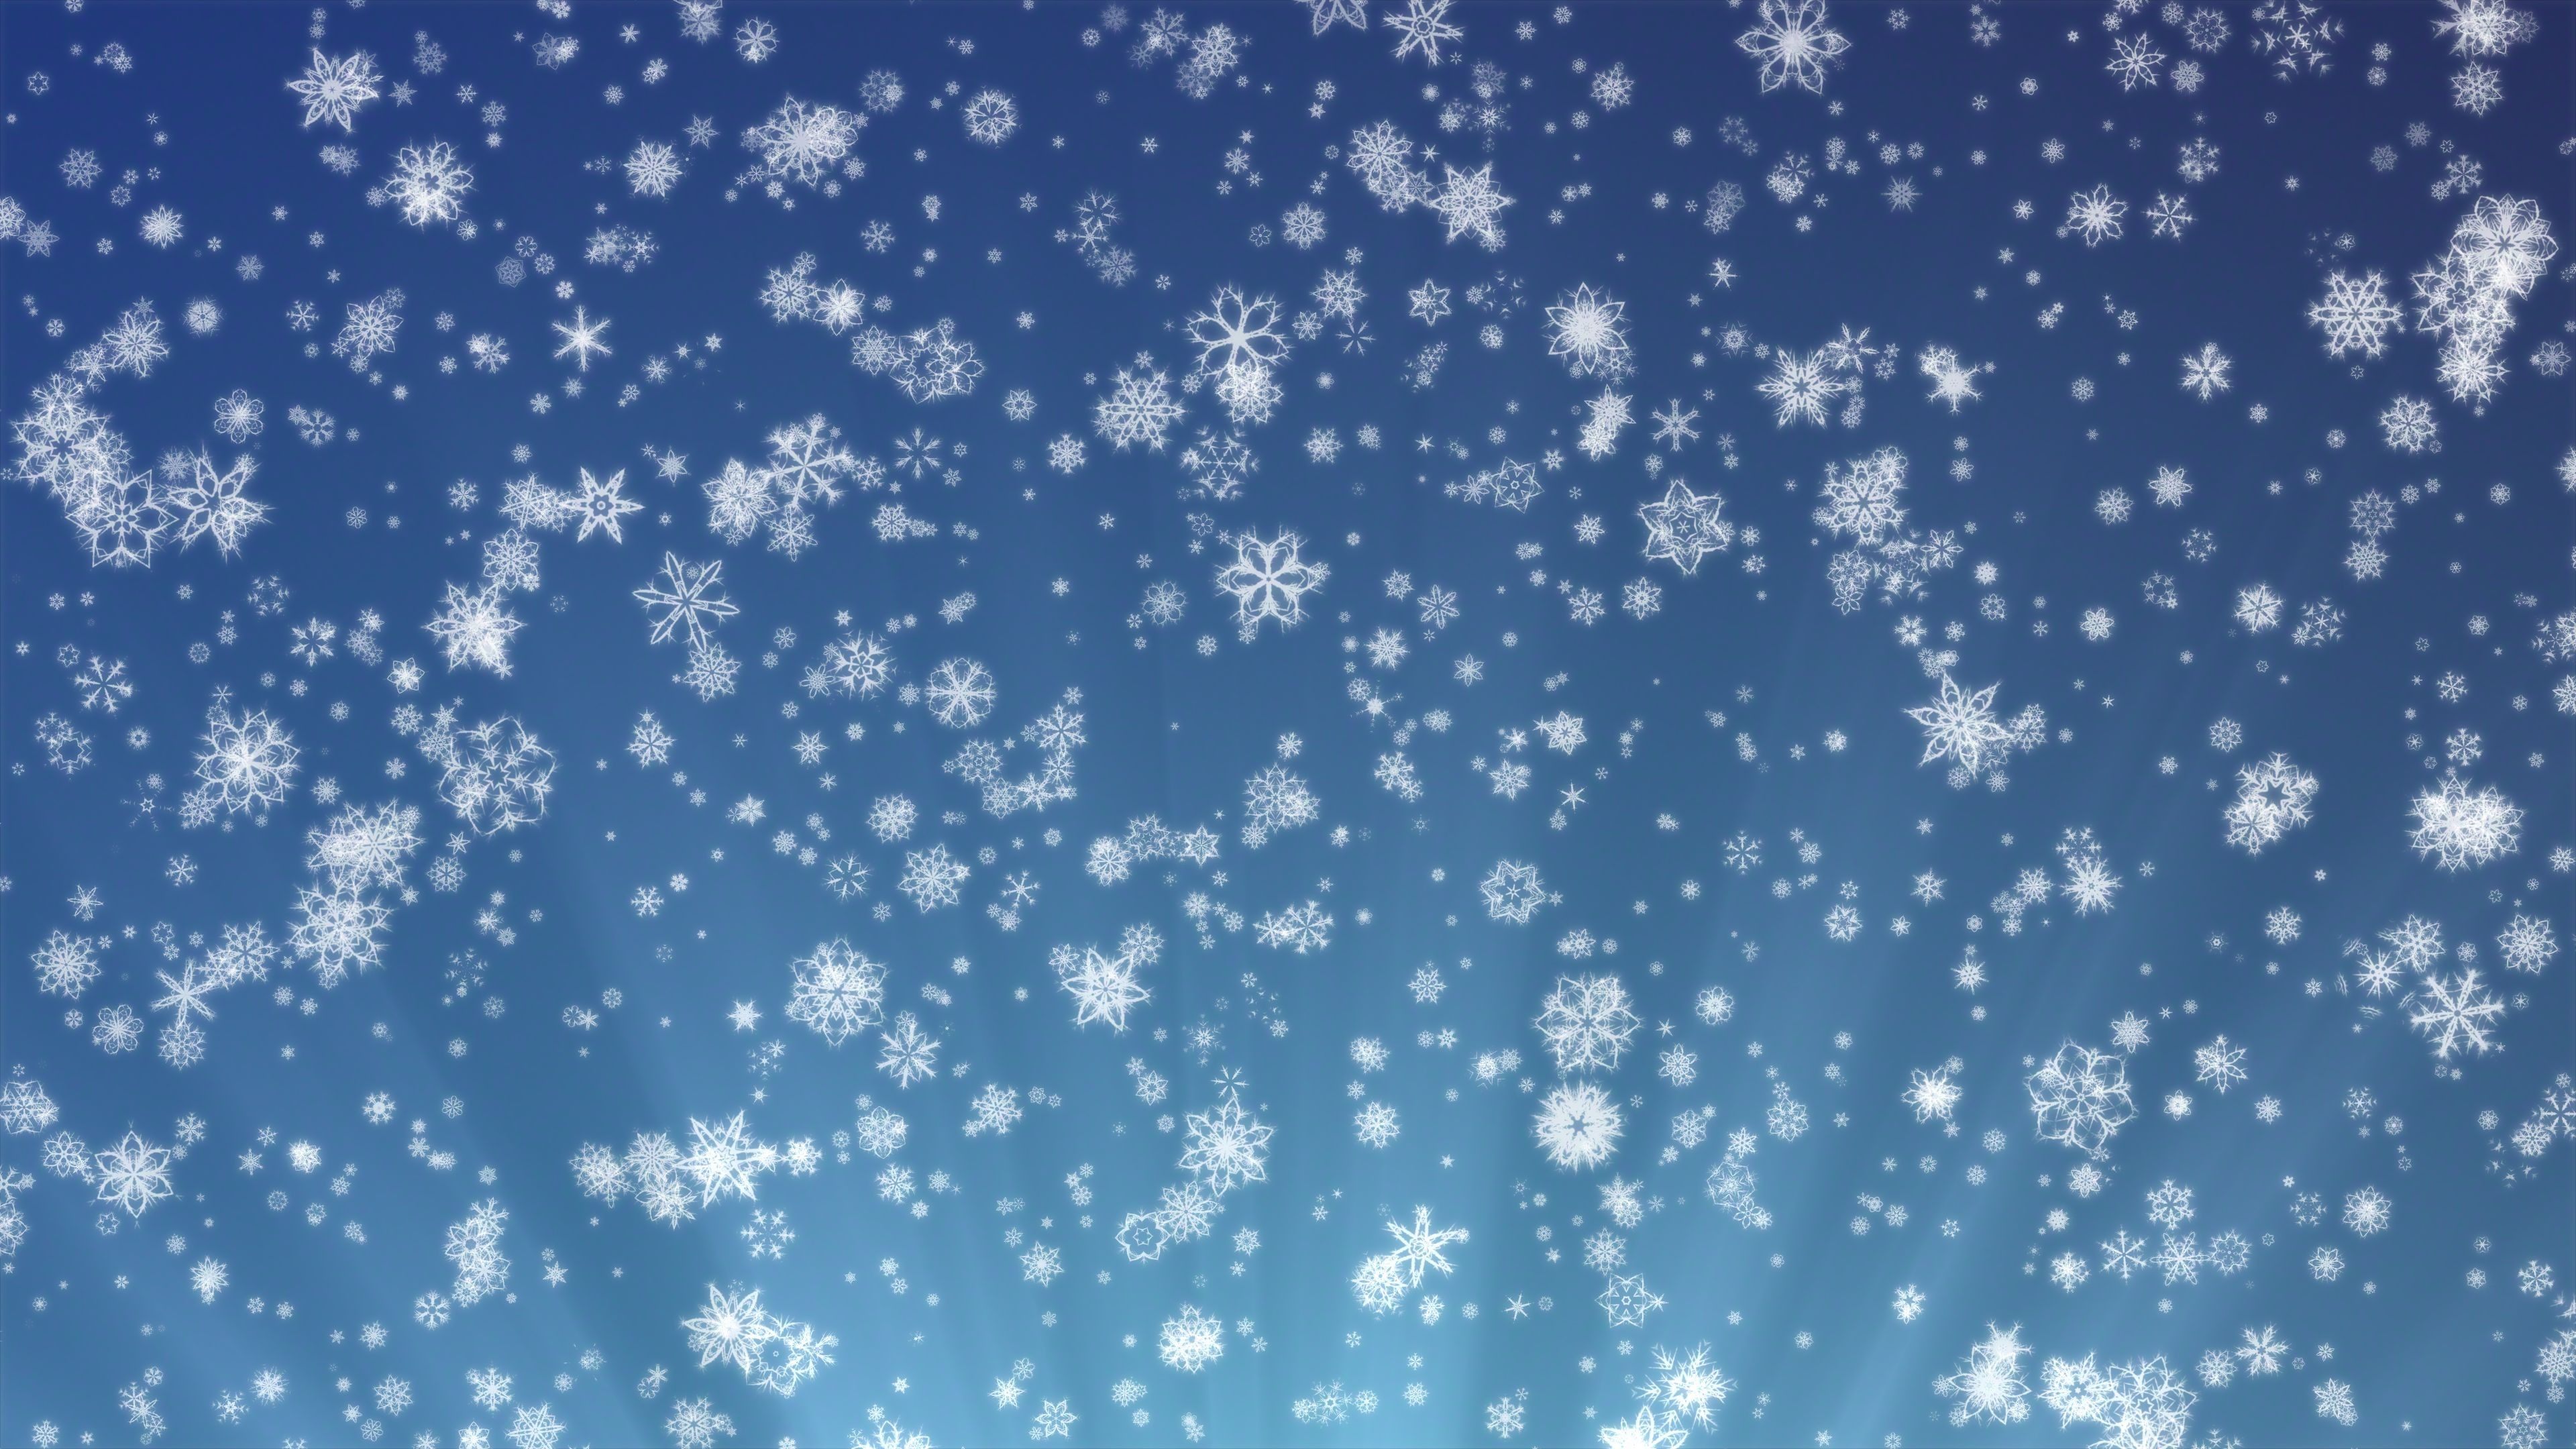 Falling Snow Wallpaper Iphone 5 Snowflakes Background 183 ① Download Free Cool Hd Wallpapers